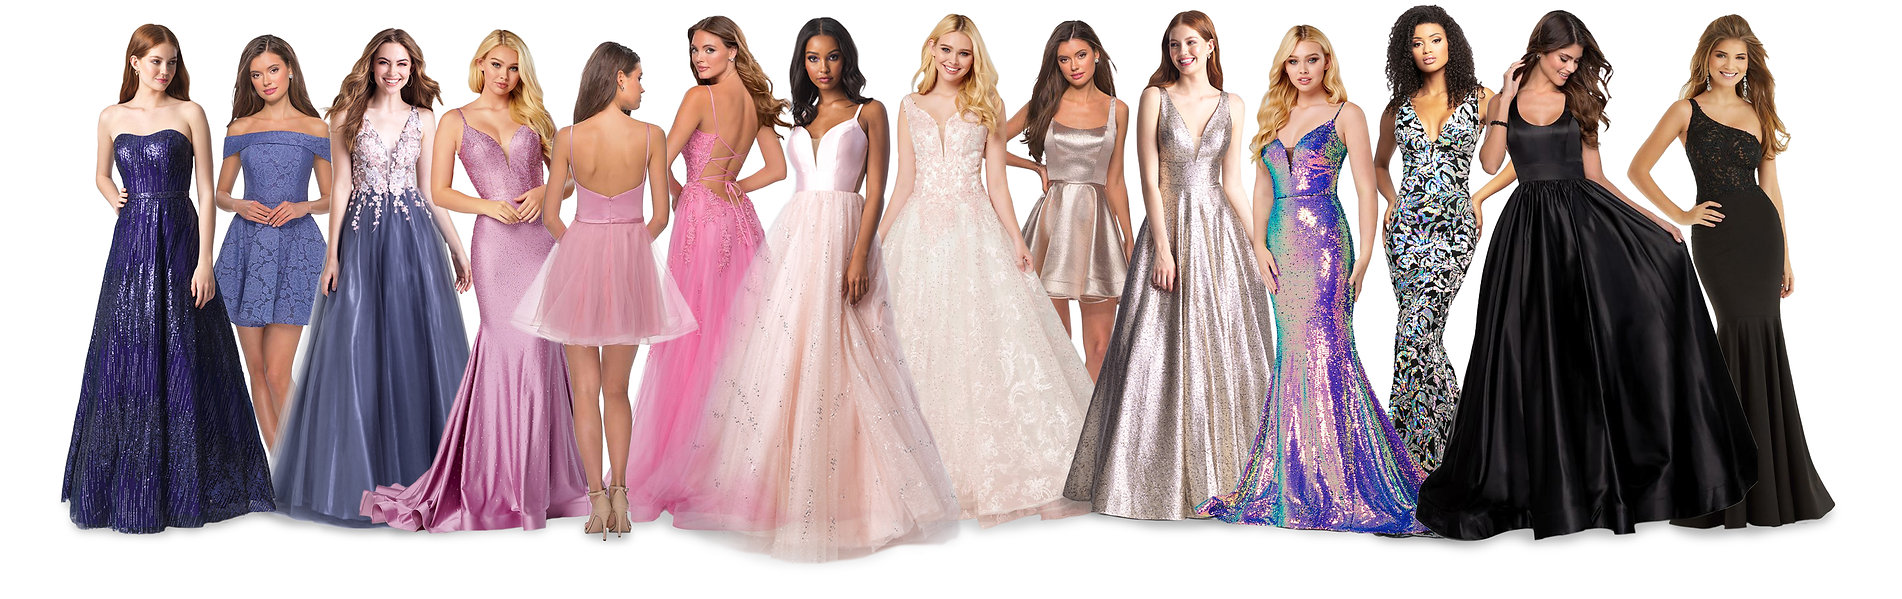 Creme Couture carries amazing prom dresses in Guelph, Ontario. We feature designers La Femme, Madison James, Johnathan Kayne, Ellie Wilde, Mon Cheri, Morilee, Mori Lee, Alyce Paris, Scala, Jessica Angel